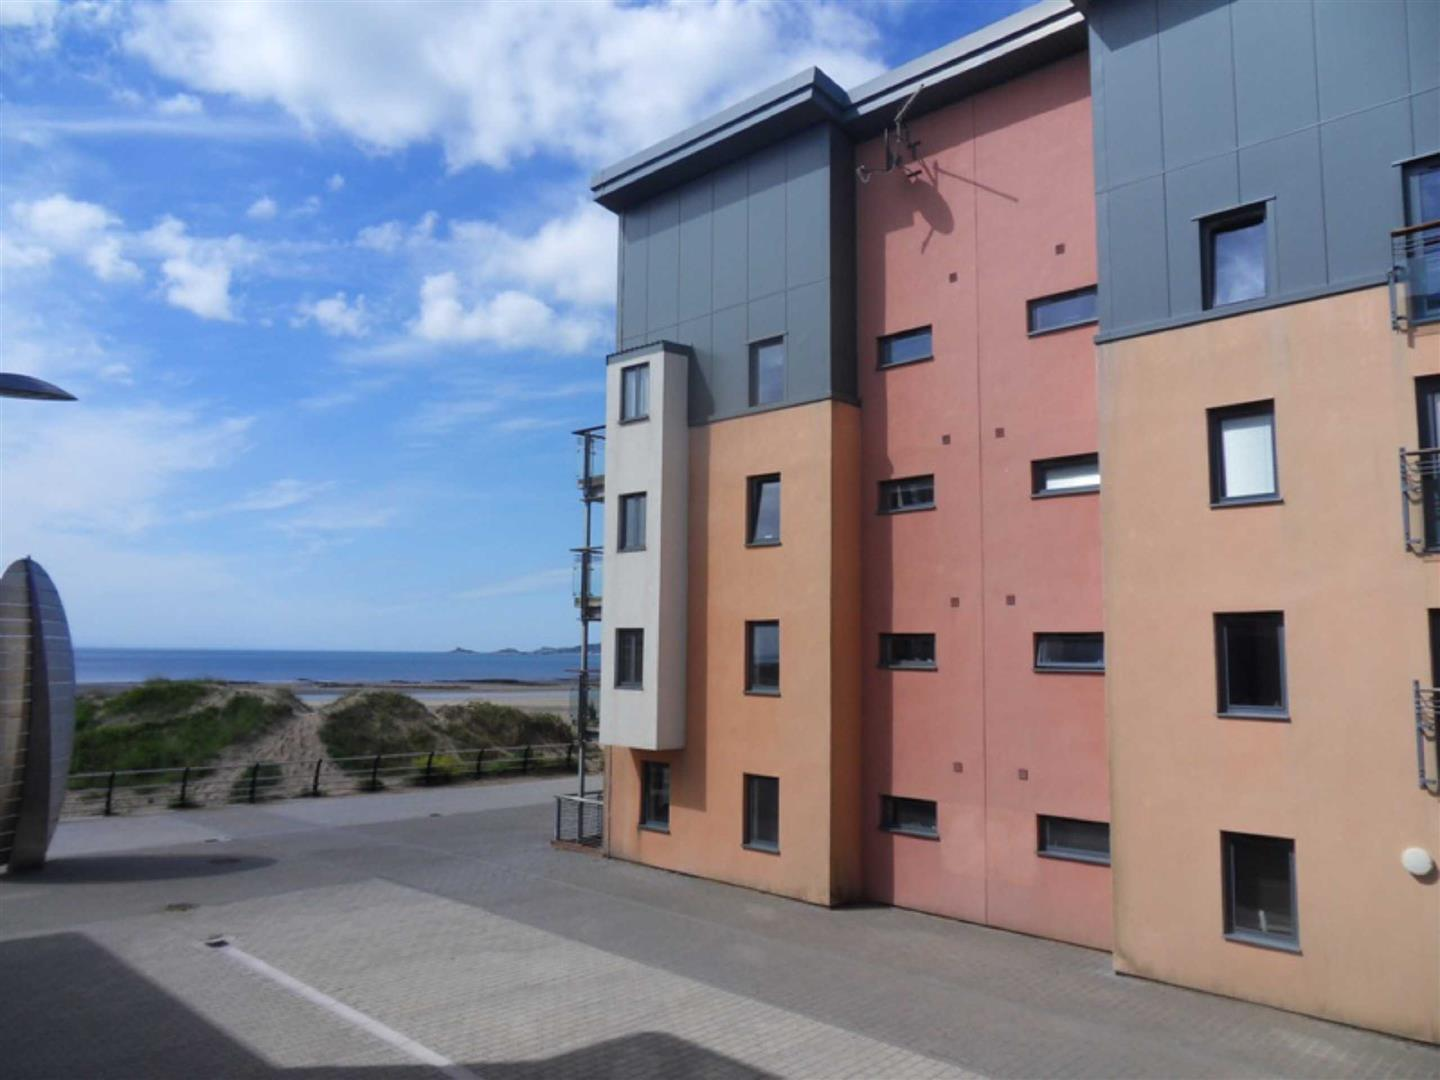 Fishermans Way, Marina, Swansea, SA1 1SU